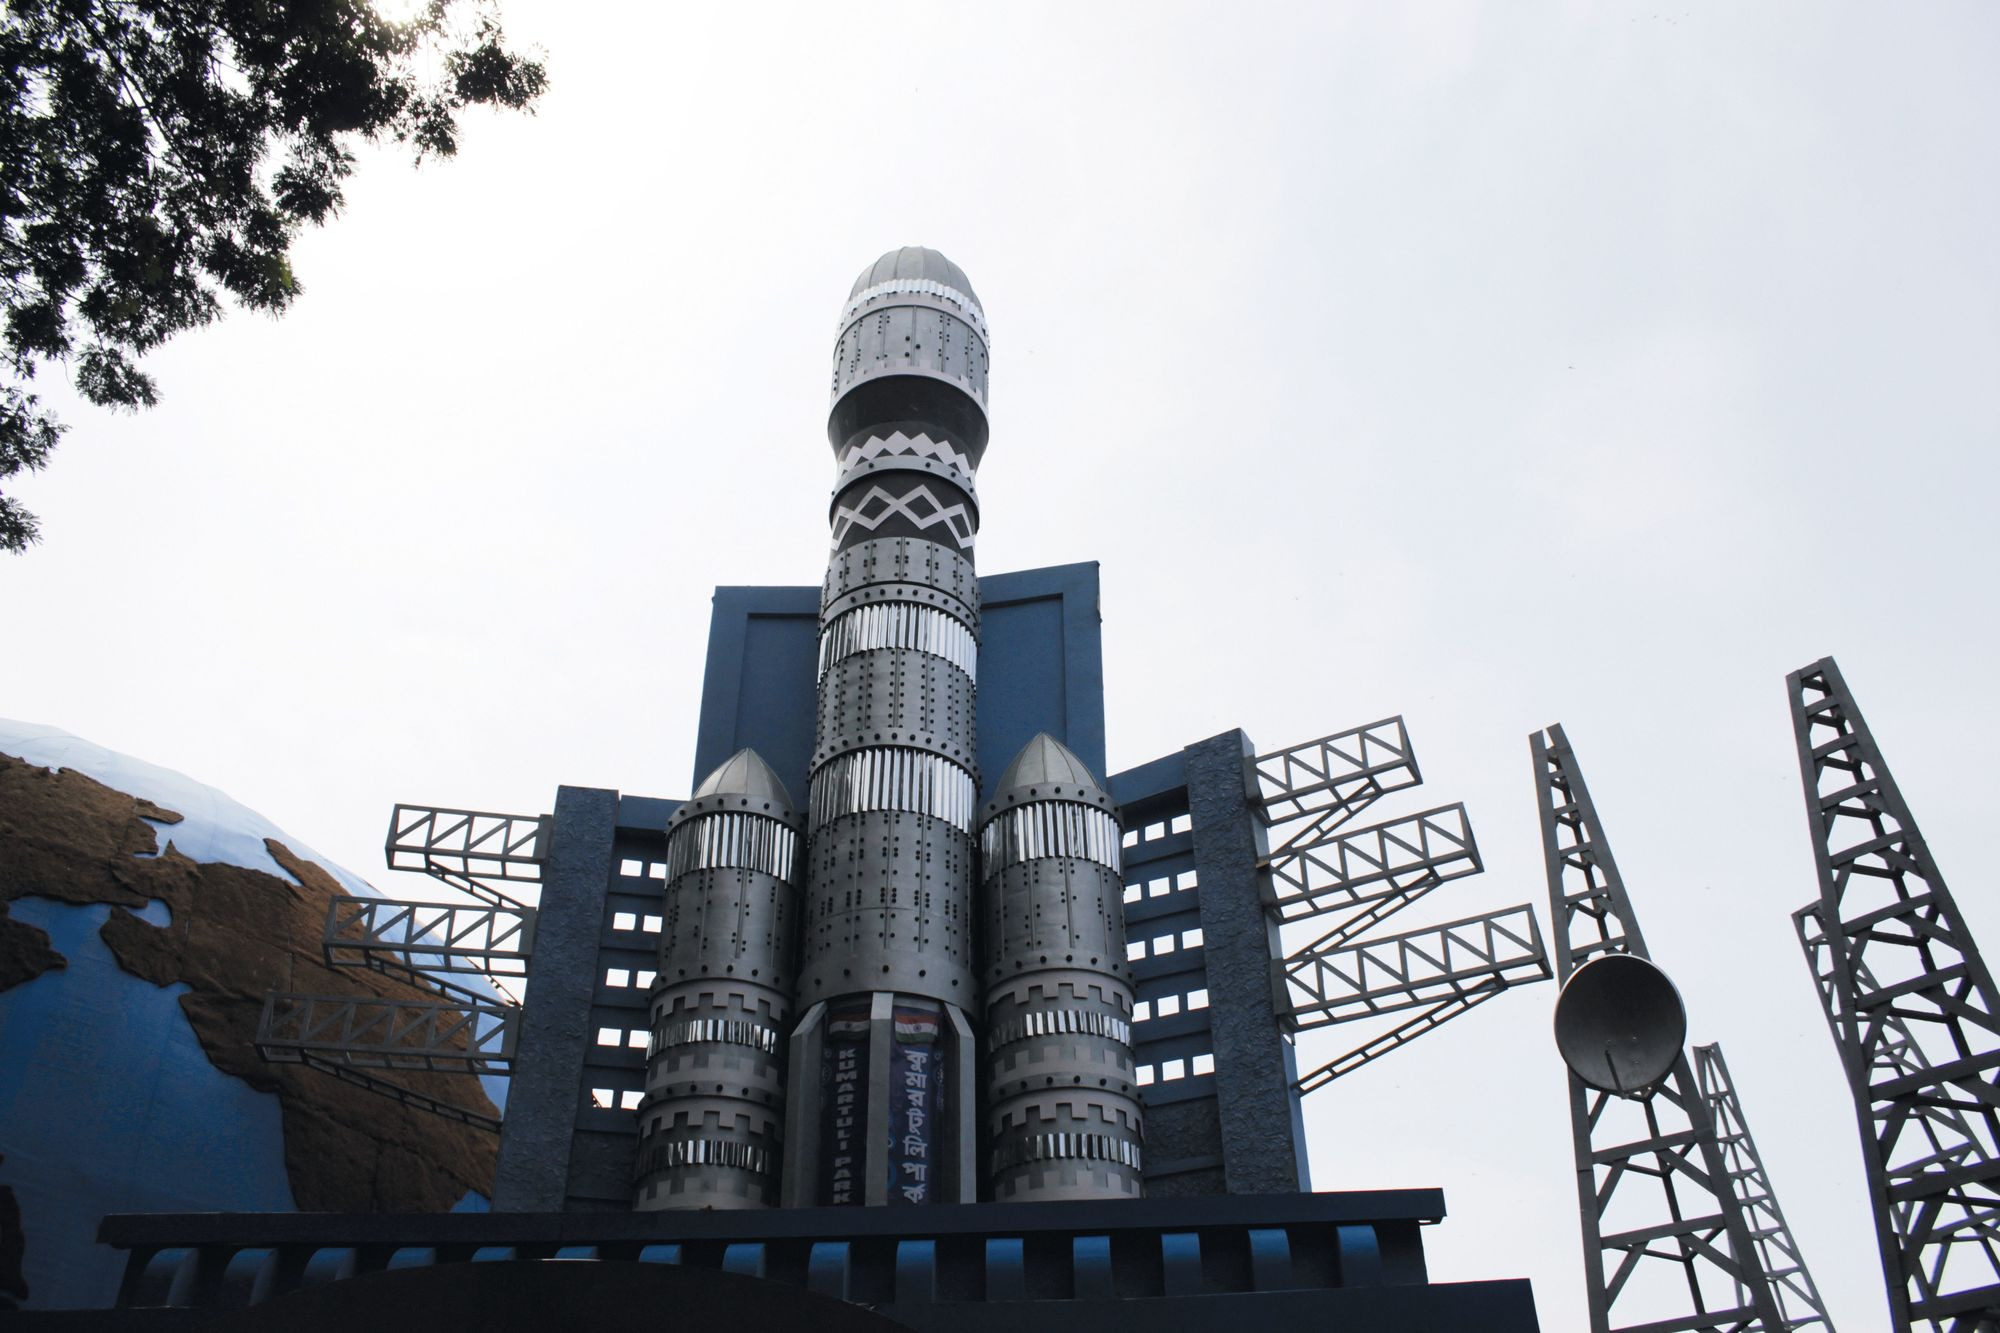 Space Rocket and towers theme during Durga Puja Festival, India, 2019.